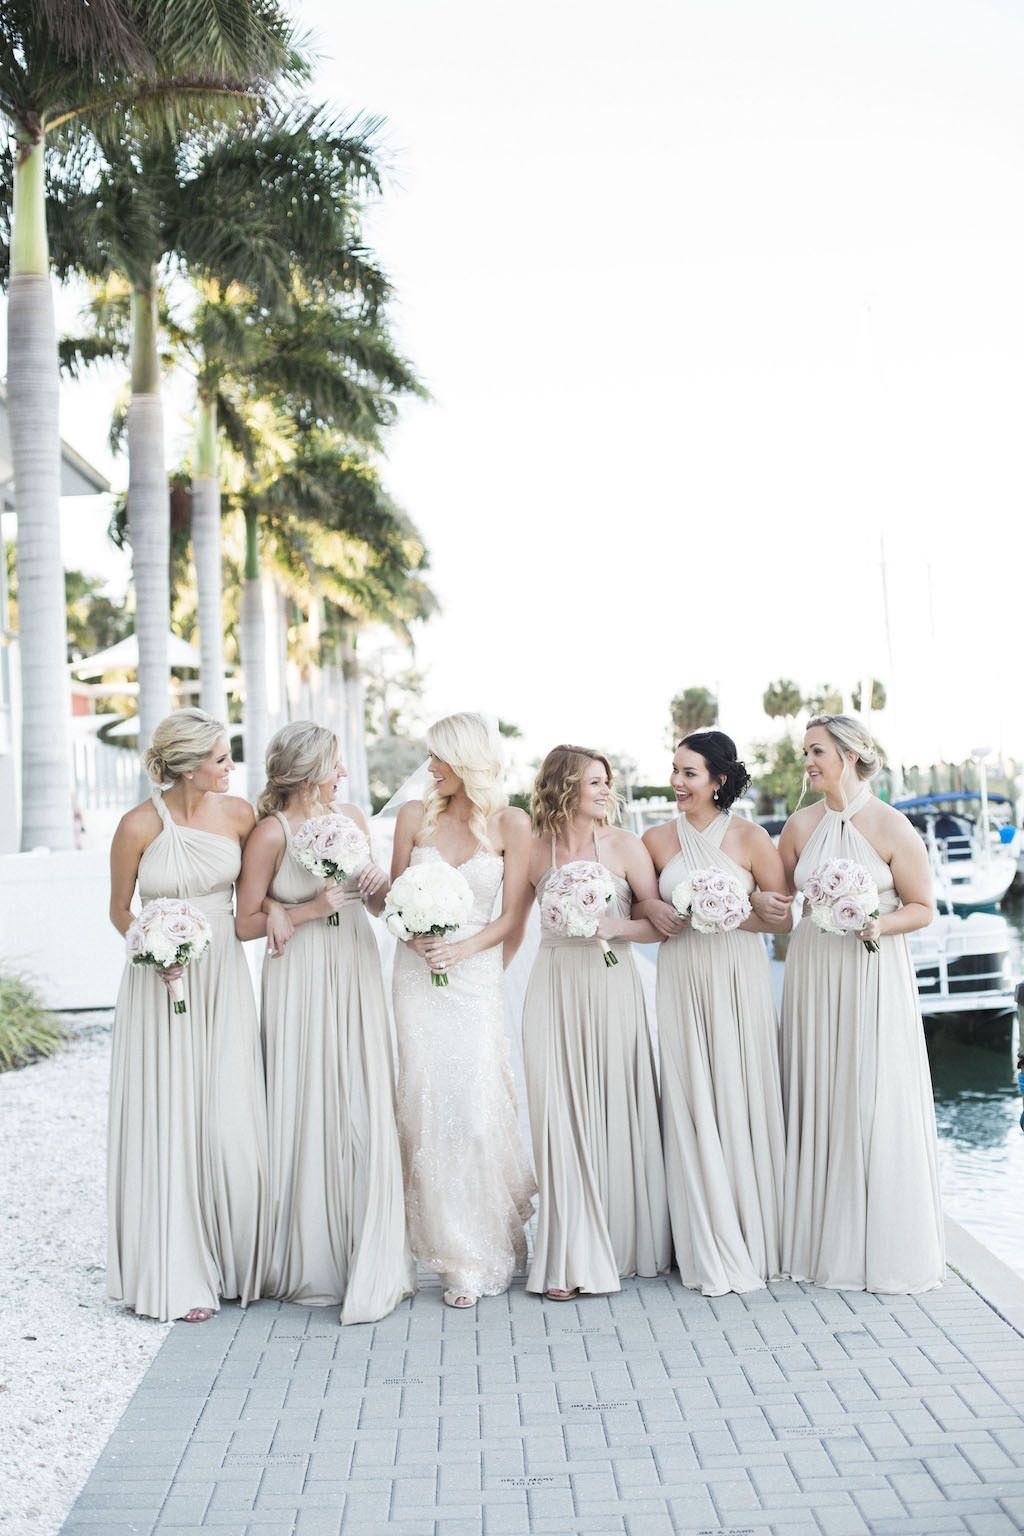 Timeless Champagne And Ivory Waterfront Wedding Sarasota Yacht Club Neutral Bridesmaid Dresses Champagne Bridesmaid Dresses Ivory Bridesmaid Dresses